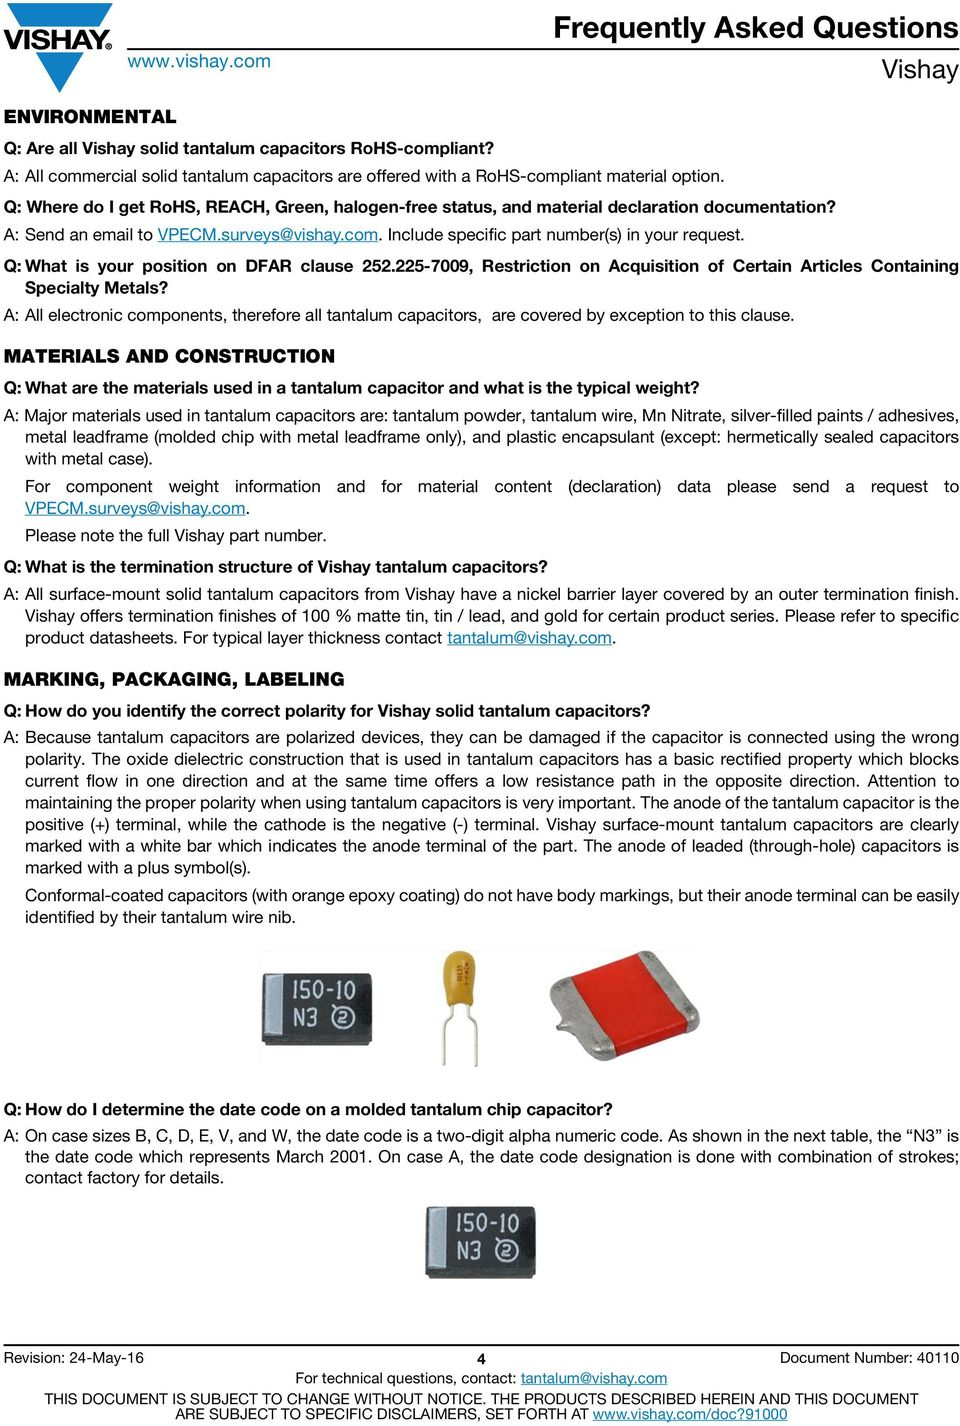 Solid Tantalum Capacitors Frequently Asked Questions (FAQs